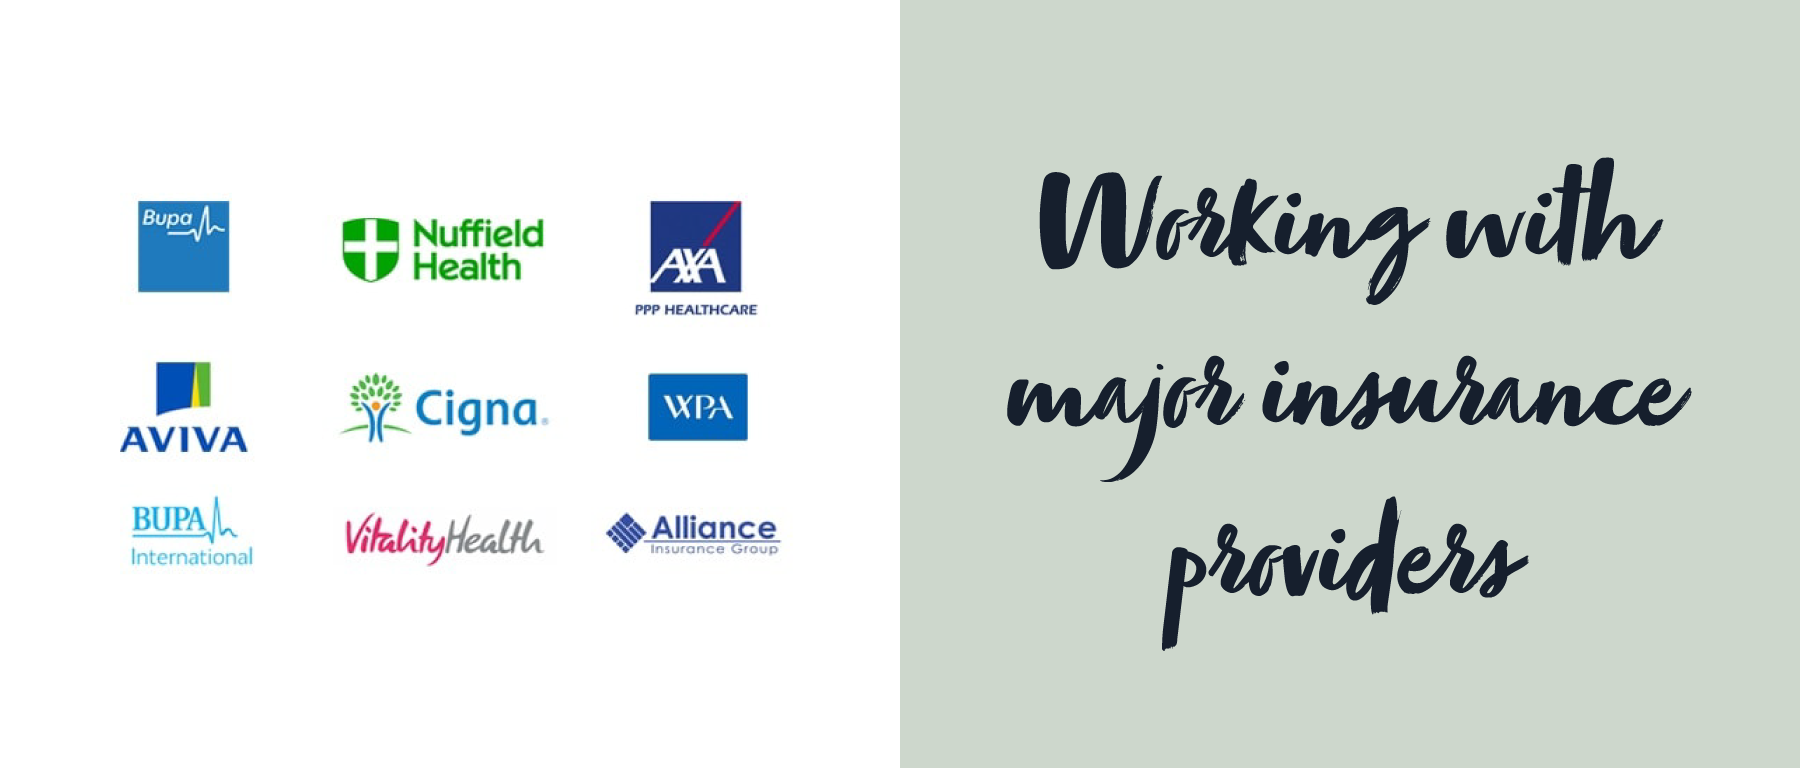 Working with major insurance providers